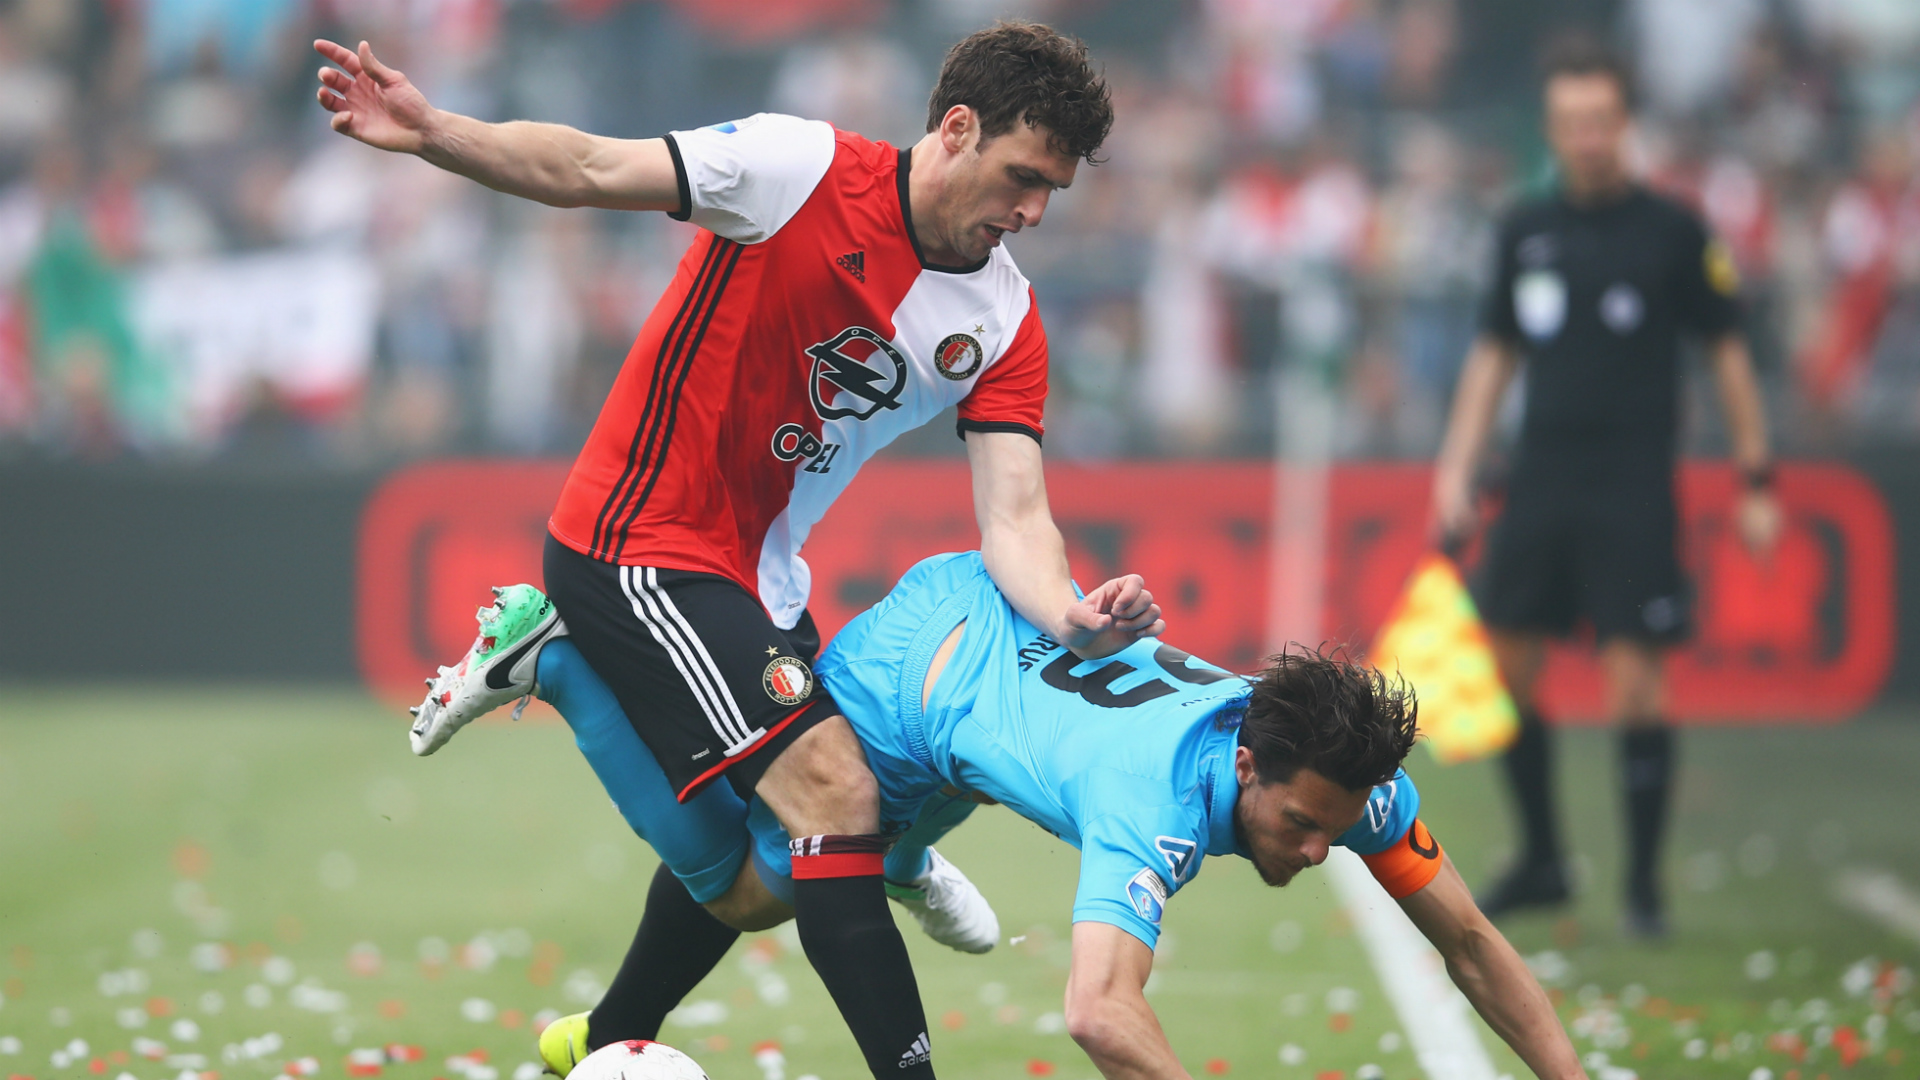 Captain Kuyt leads Feyenoord to Dutch league title